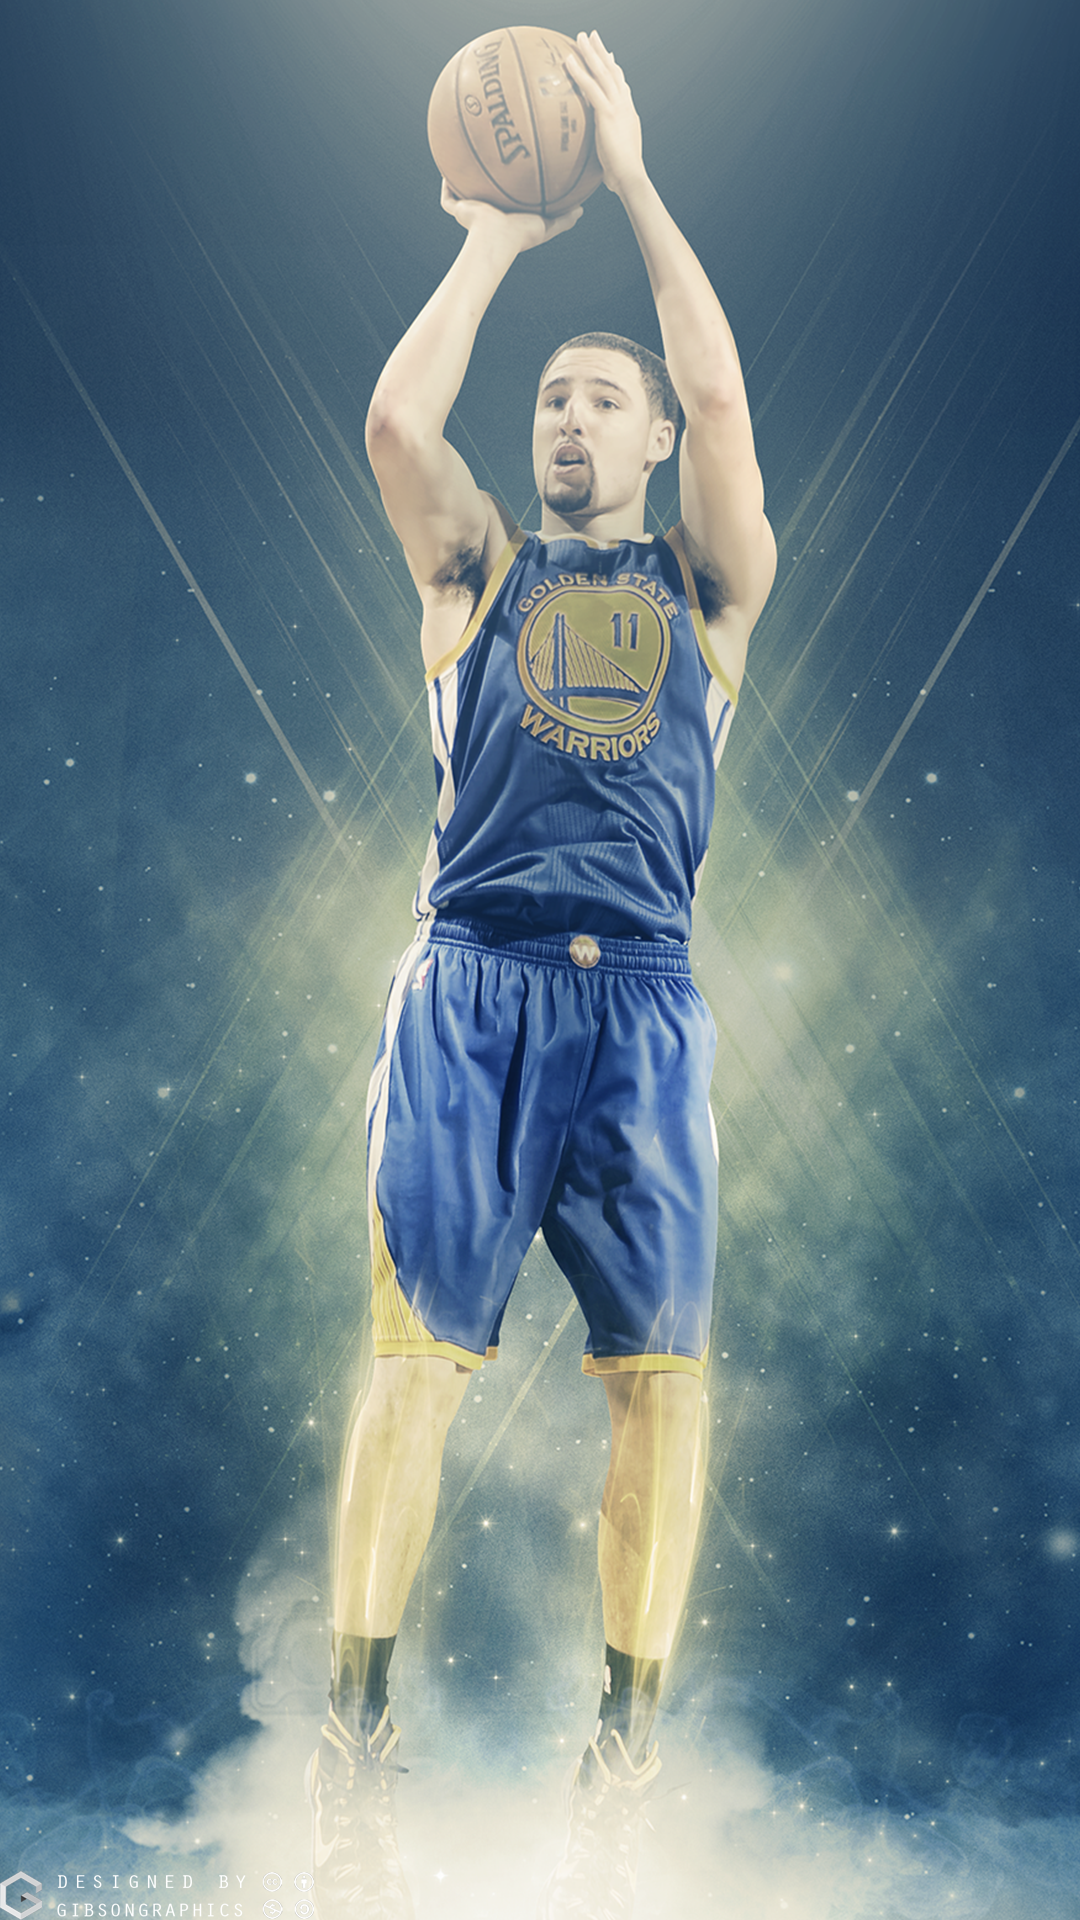 KLAY THOMPSON ARTWORK